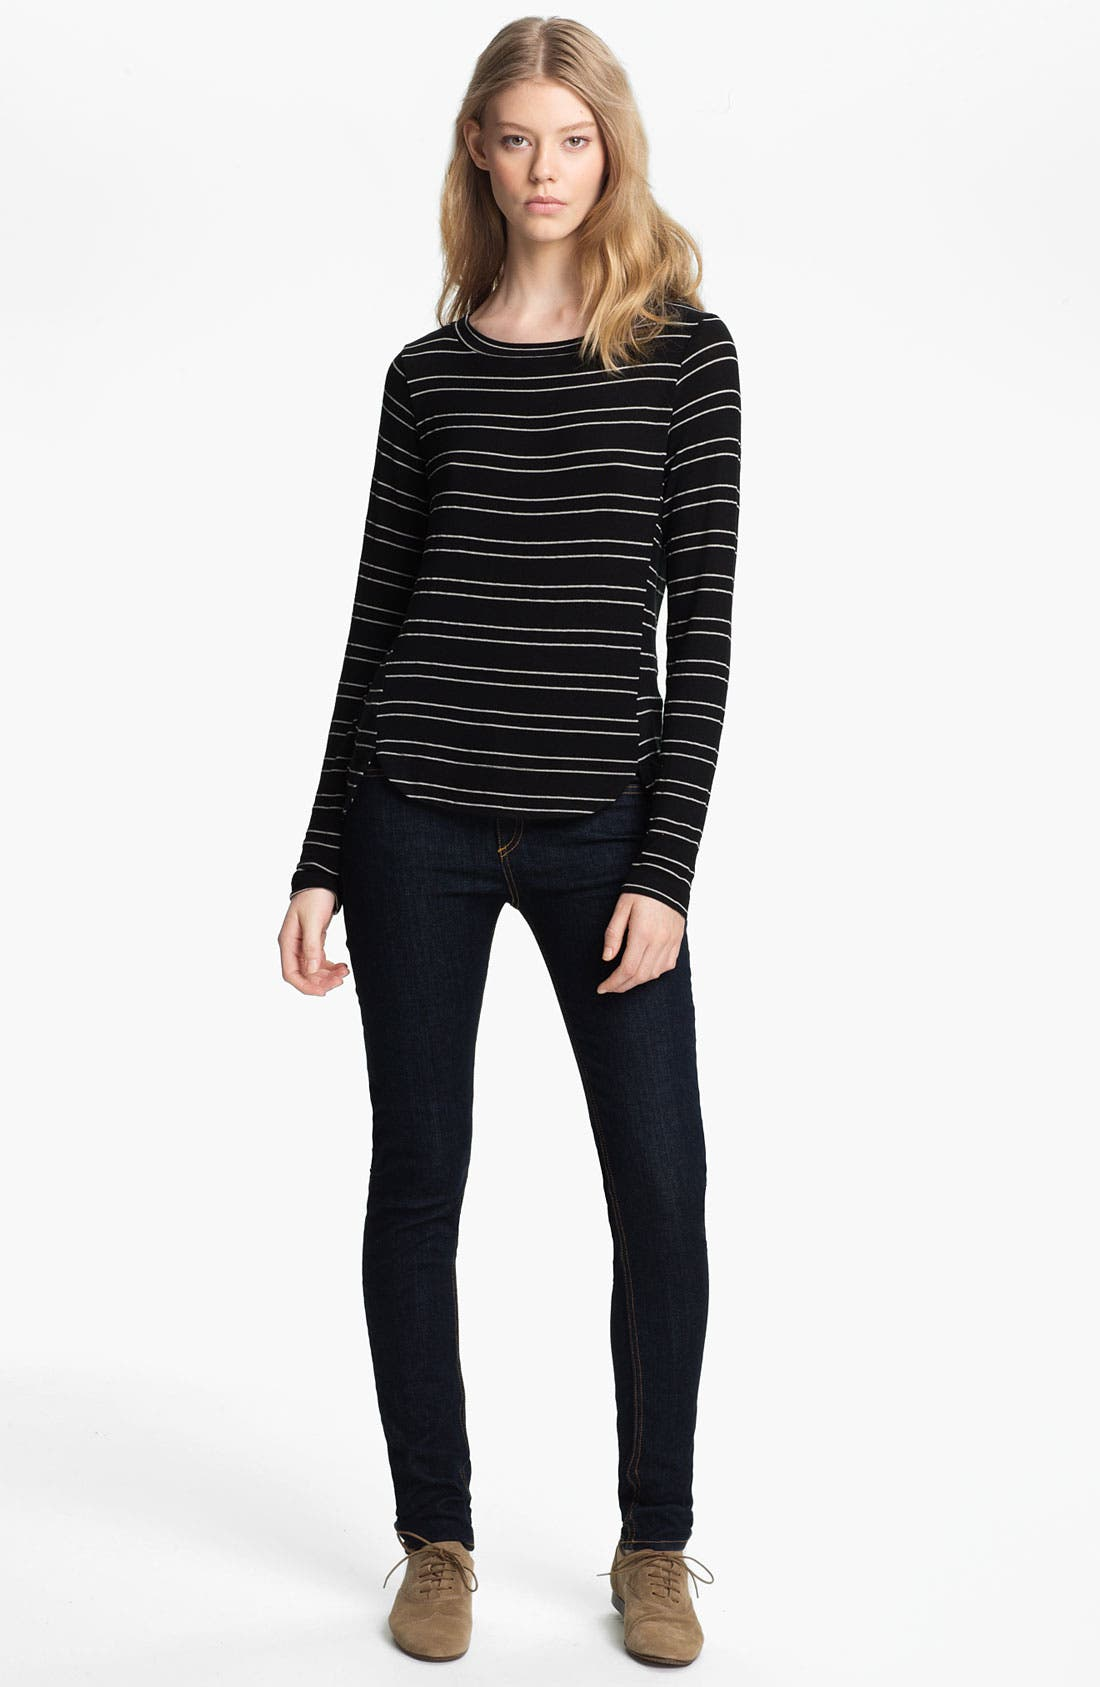 Alternate Image 1 Selected - Kain 'Una' Stripe Sweater